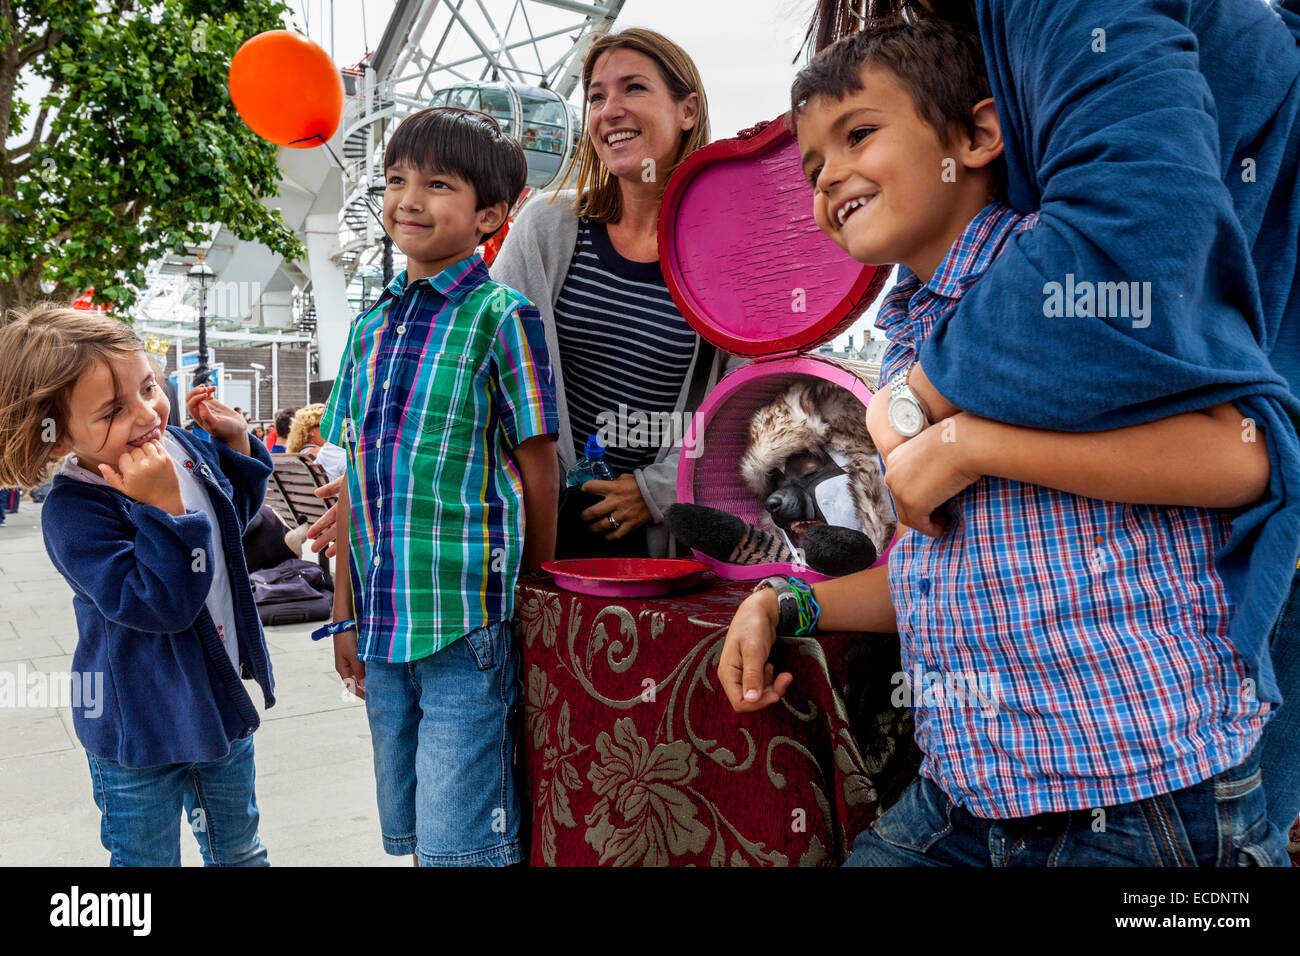 A Family Poses With A Street Entertainer At The South Bank, London, England Stock Foto